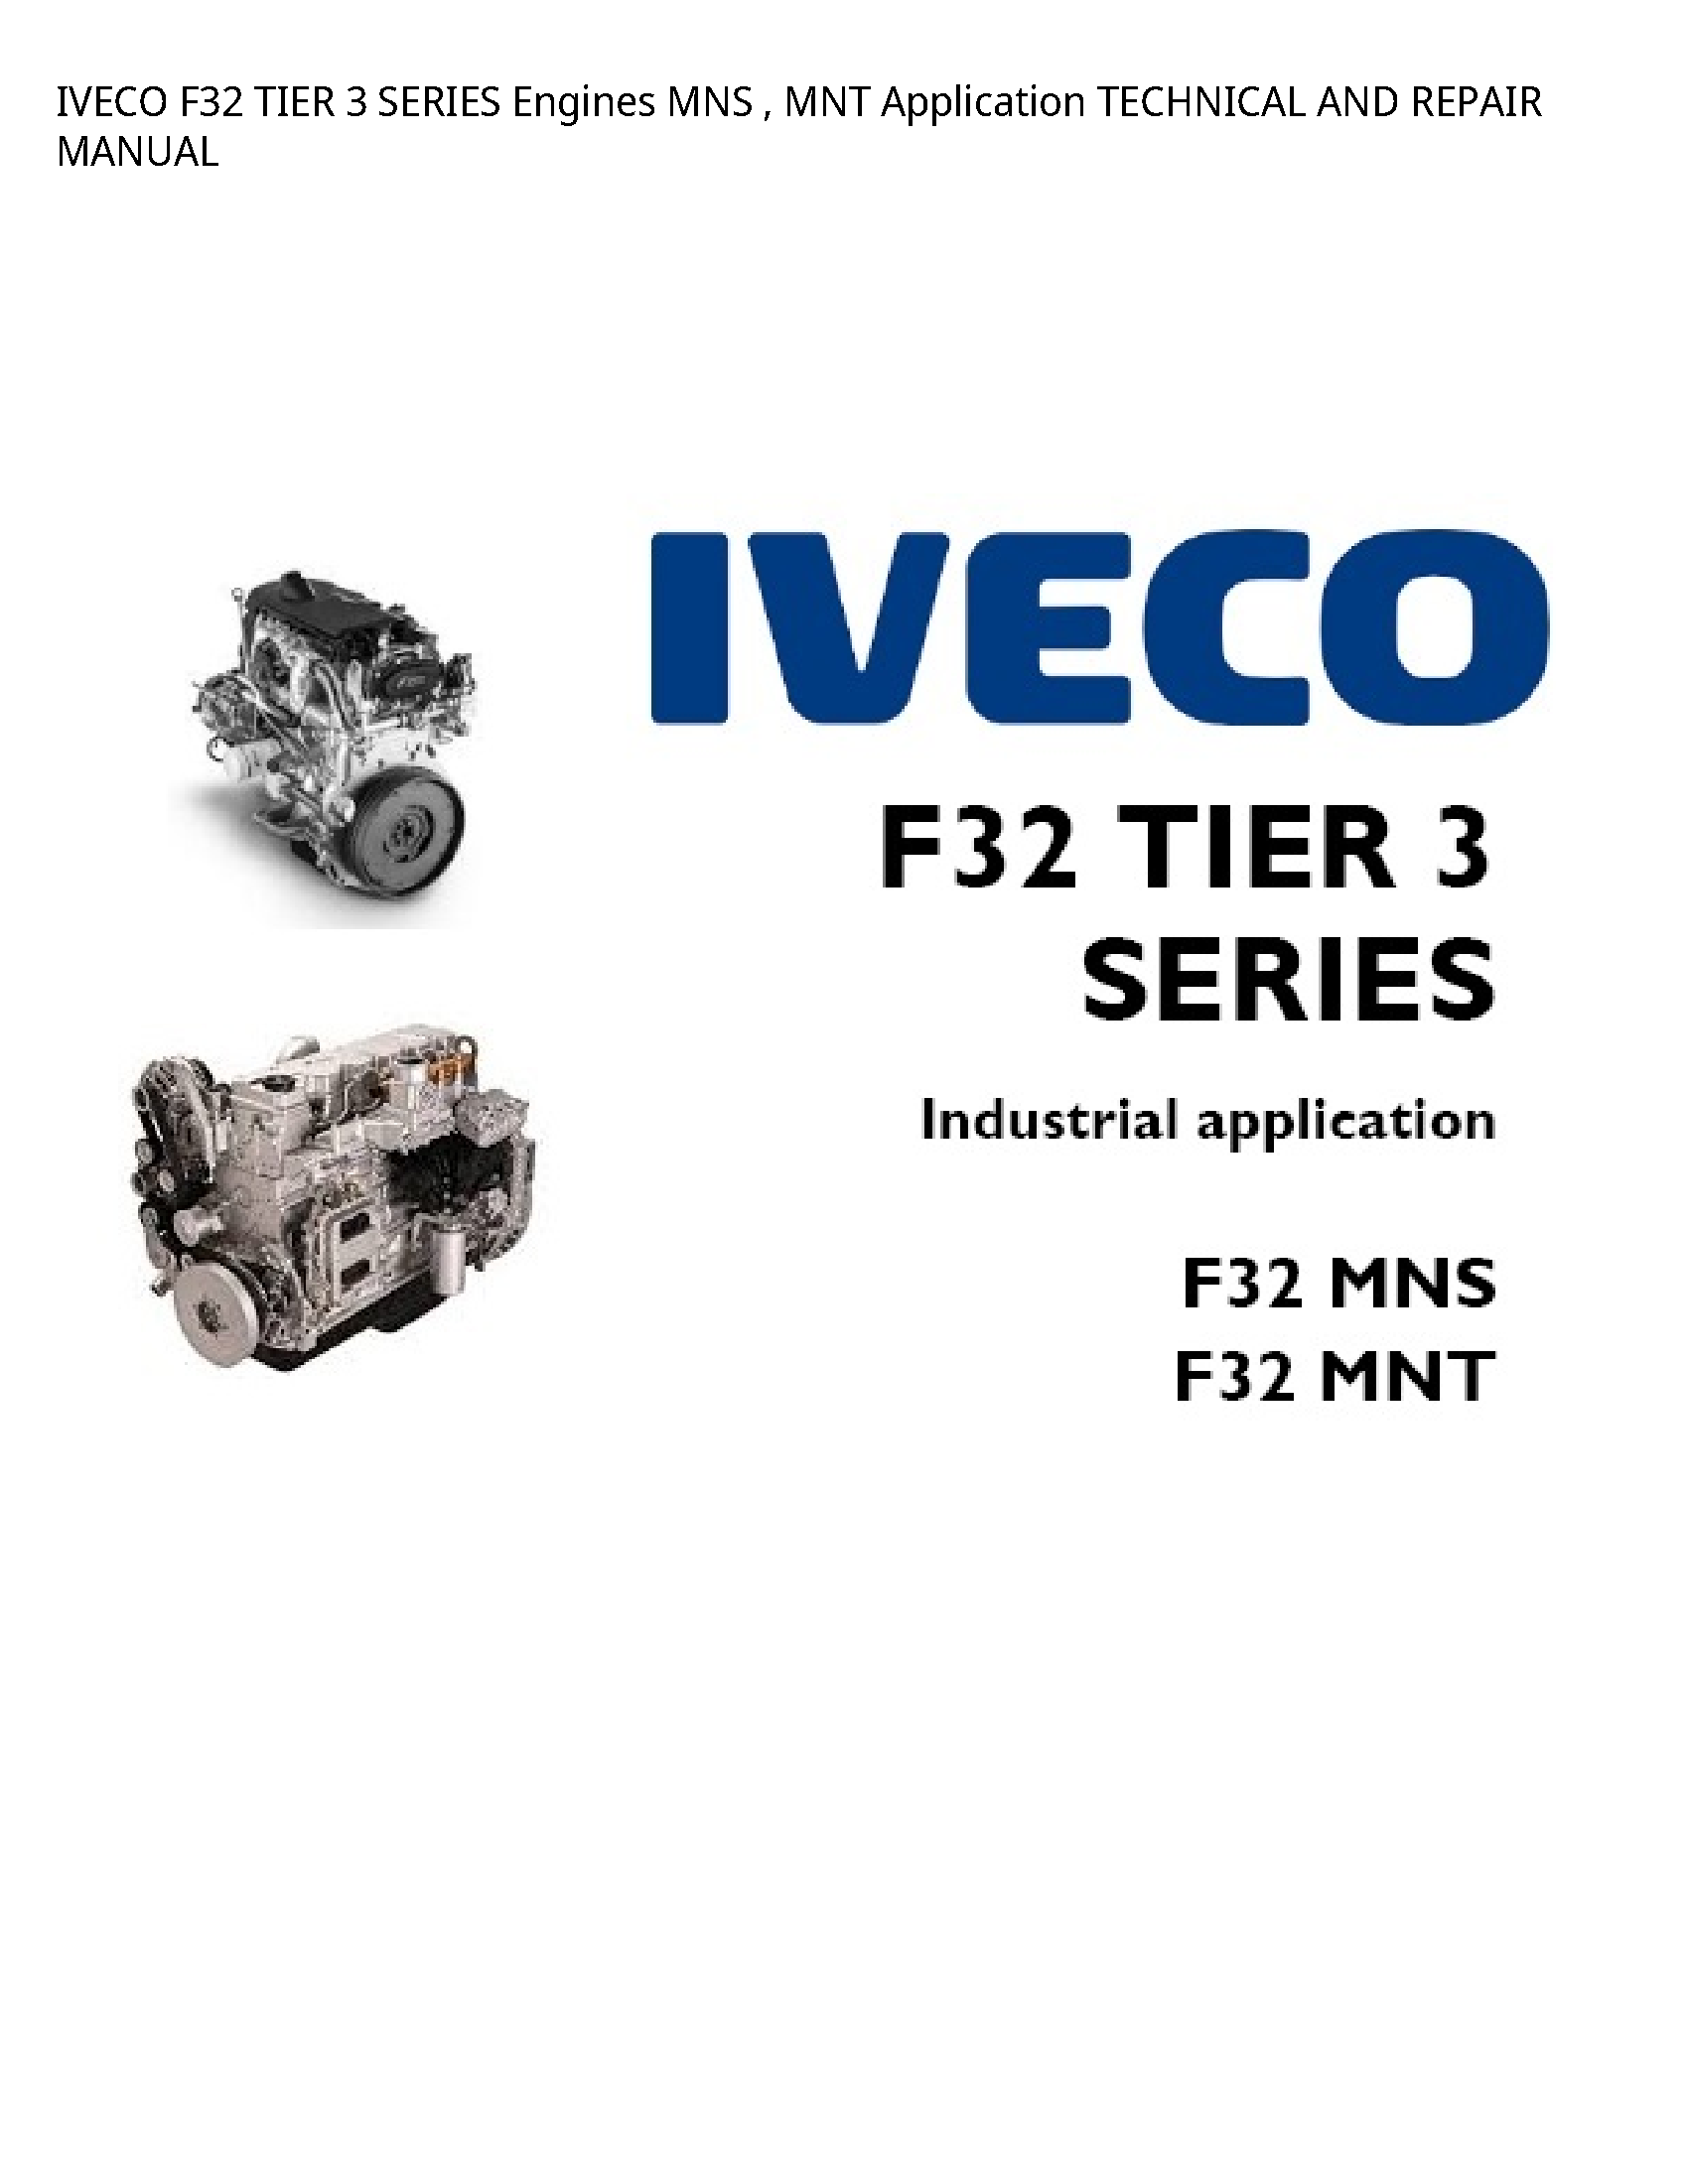 Iveco F32 TIER SERIES Engines MNS MNT Application TECHNICAL AND REPAIR manual